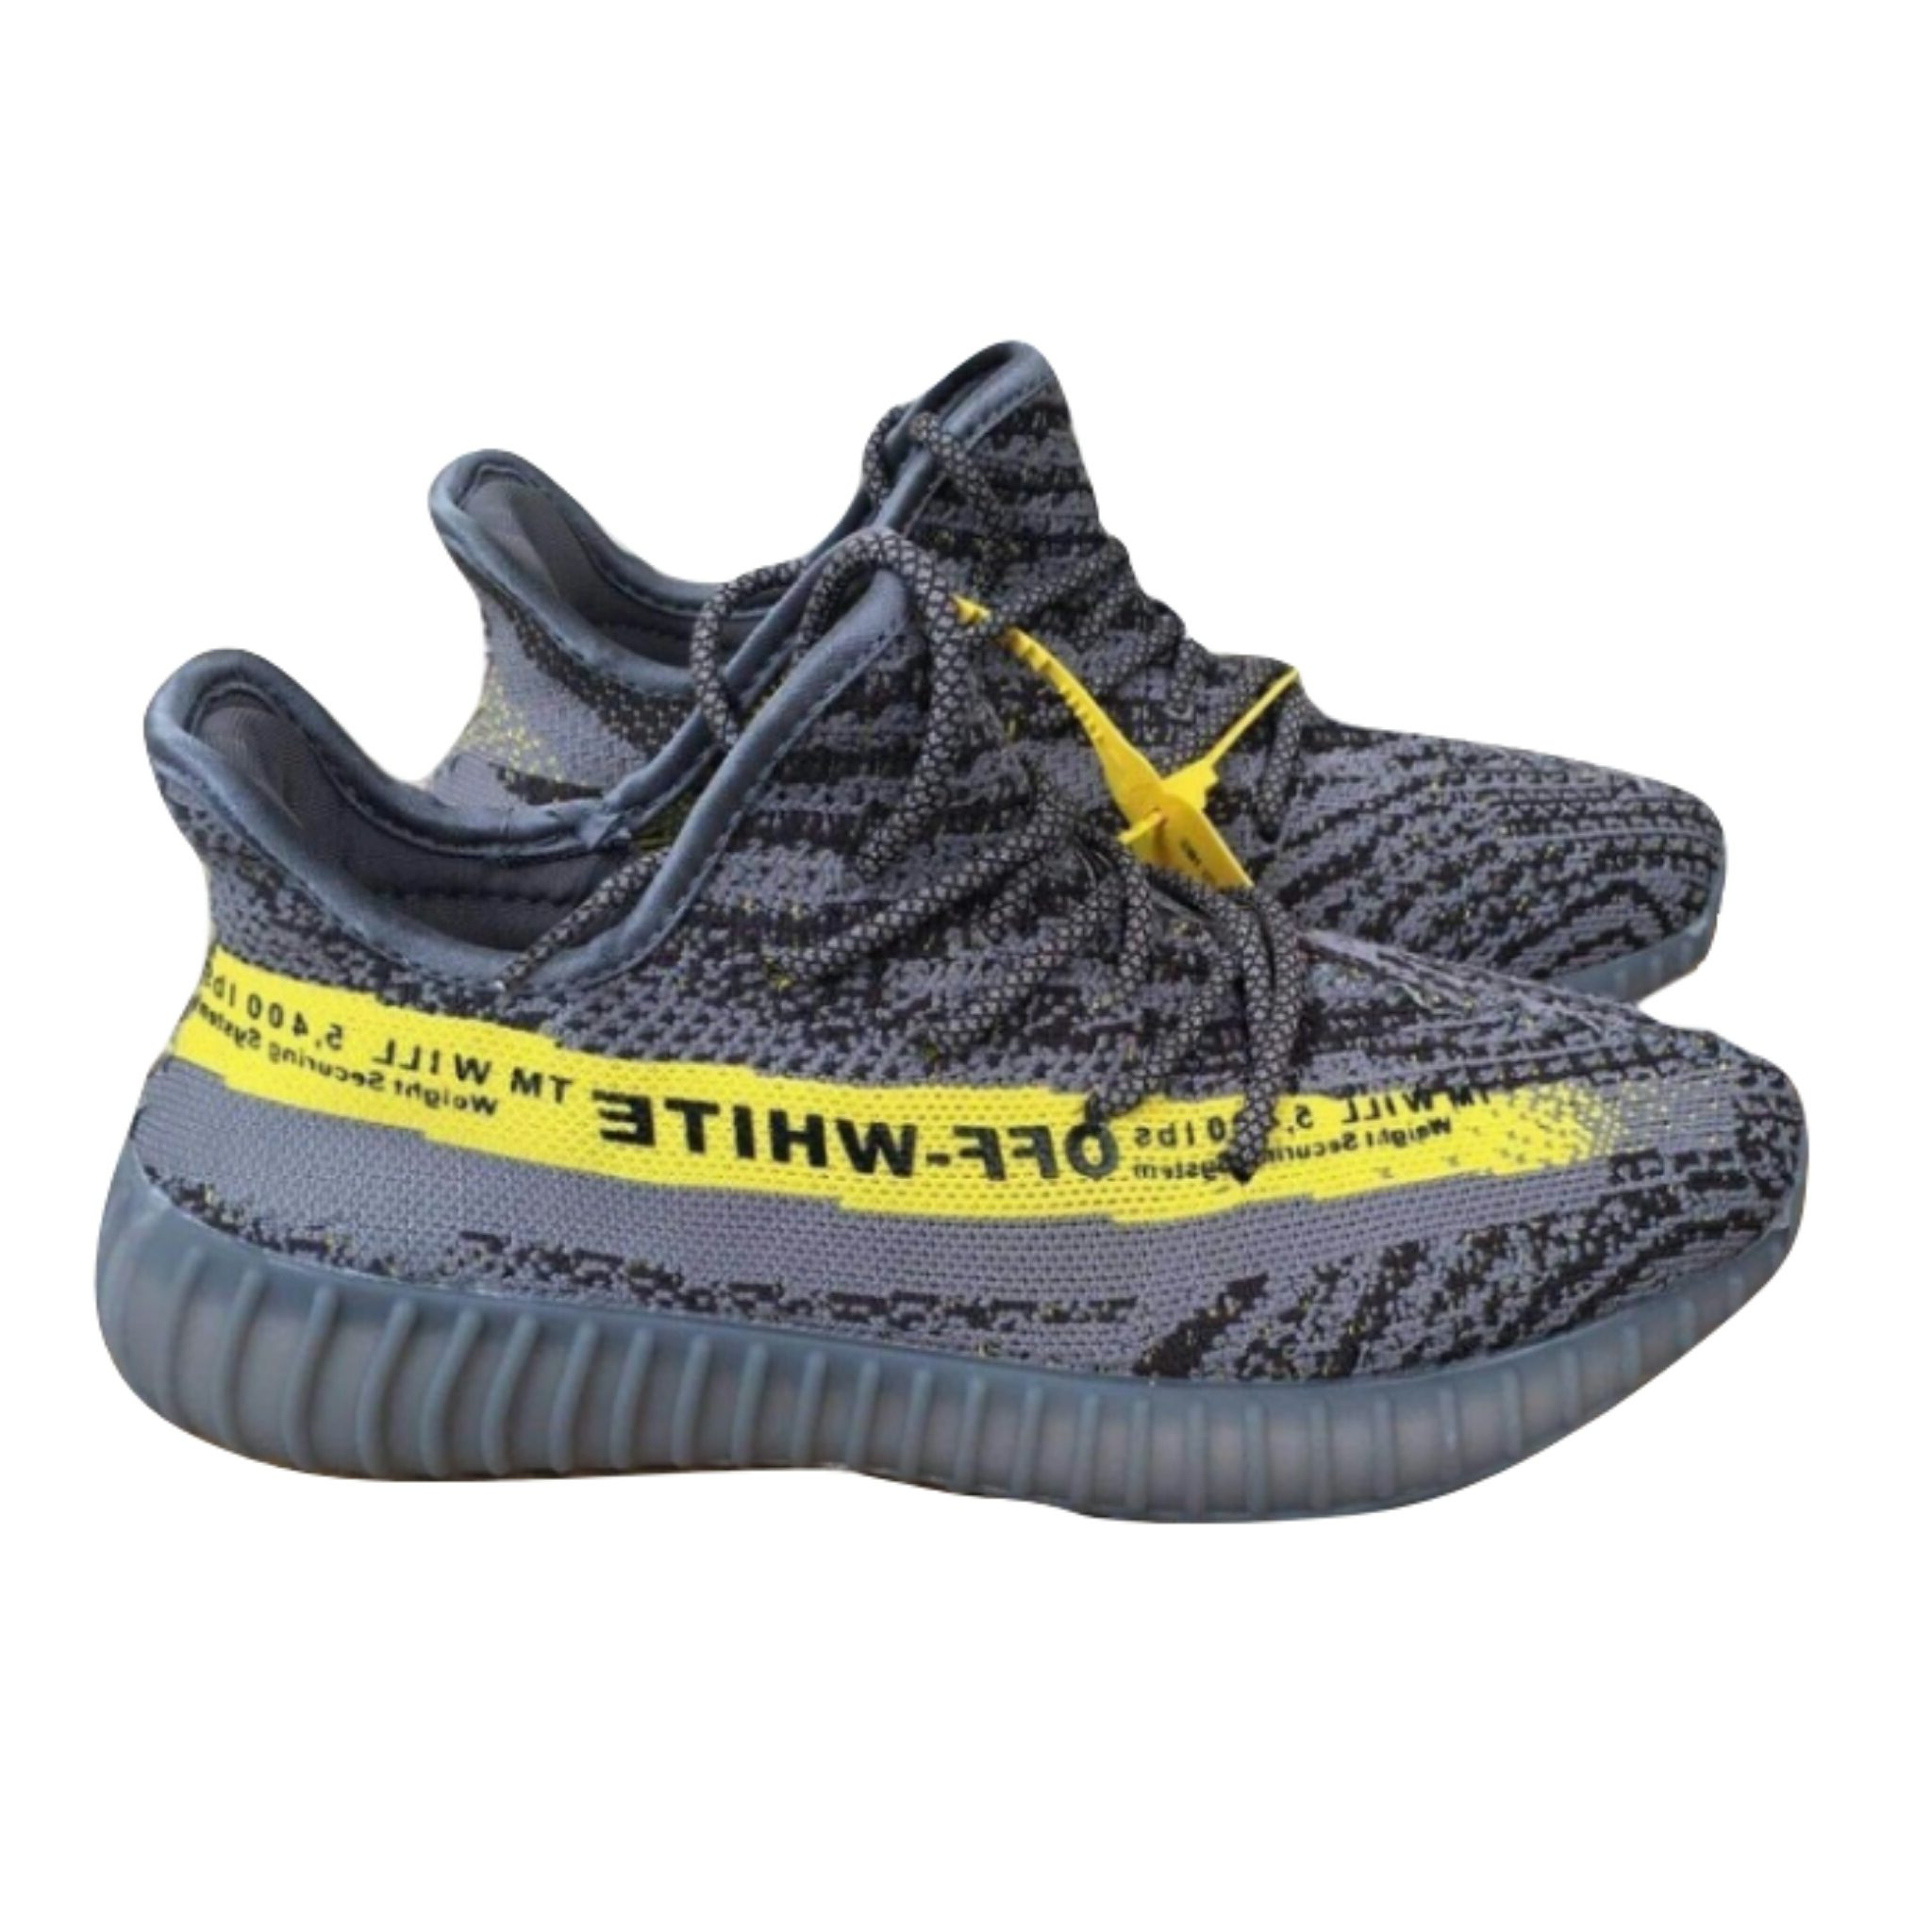 Adidas Yeezy Boost 350 Off White Buy Shoes Online In Pakistan